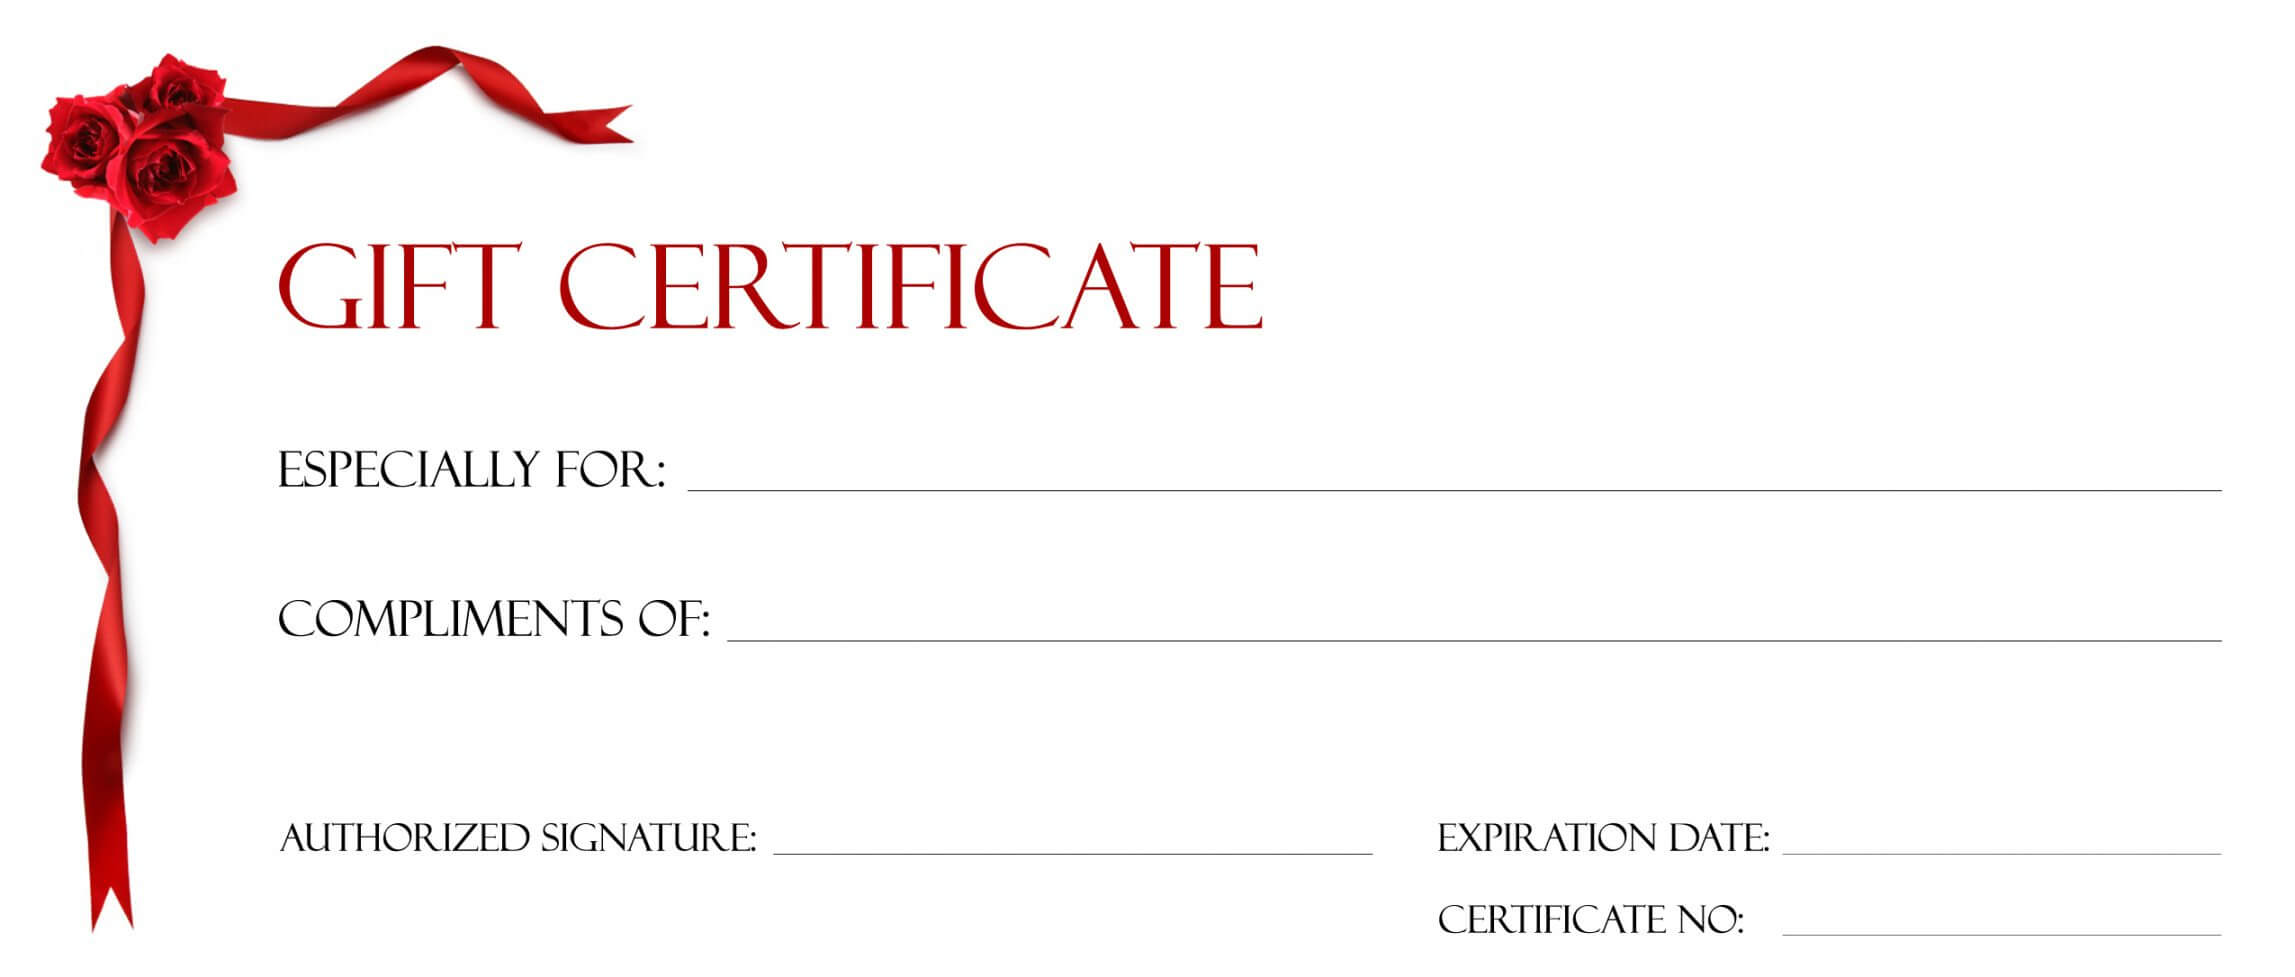 Editable Blank Tattoo Gift Certificate Template Tattoo Gift Intended For Tattoo Gift Certificate Template